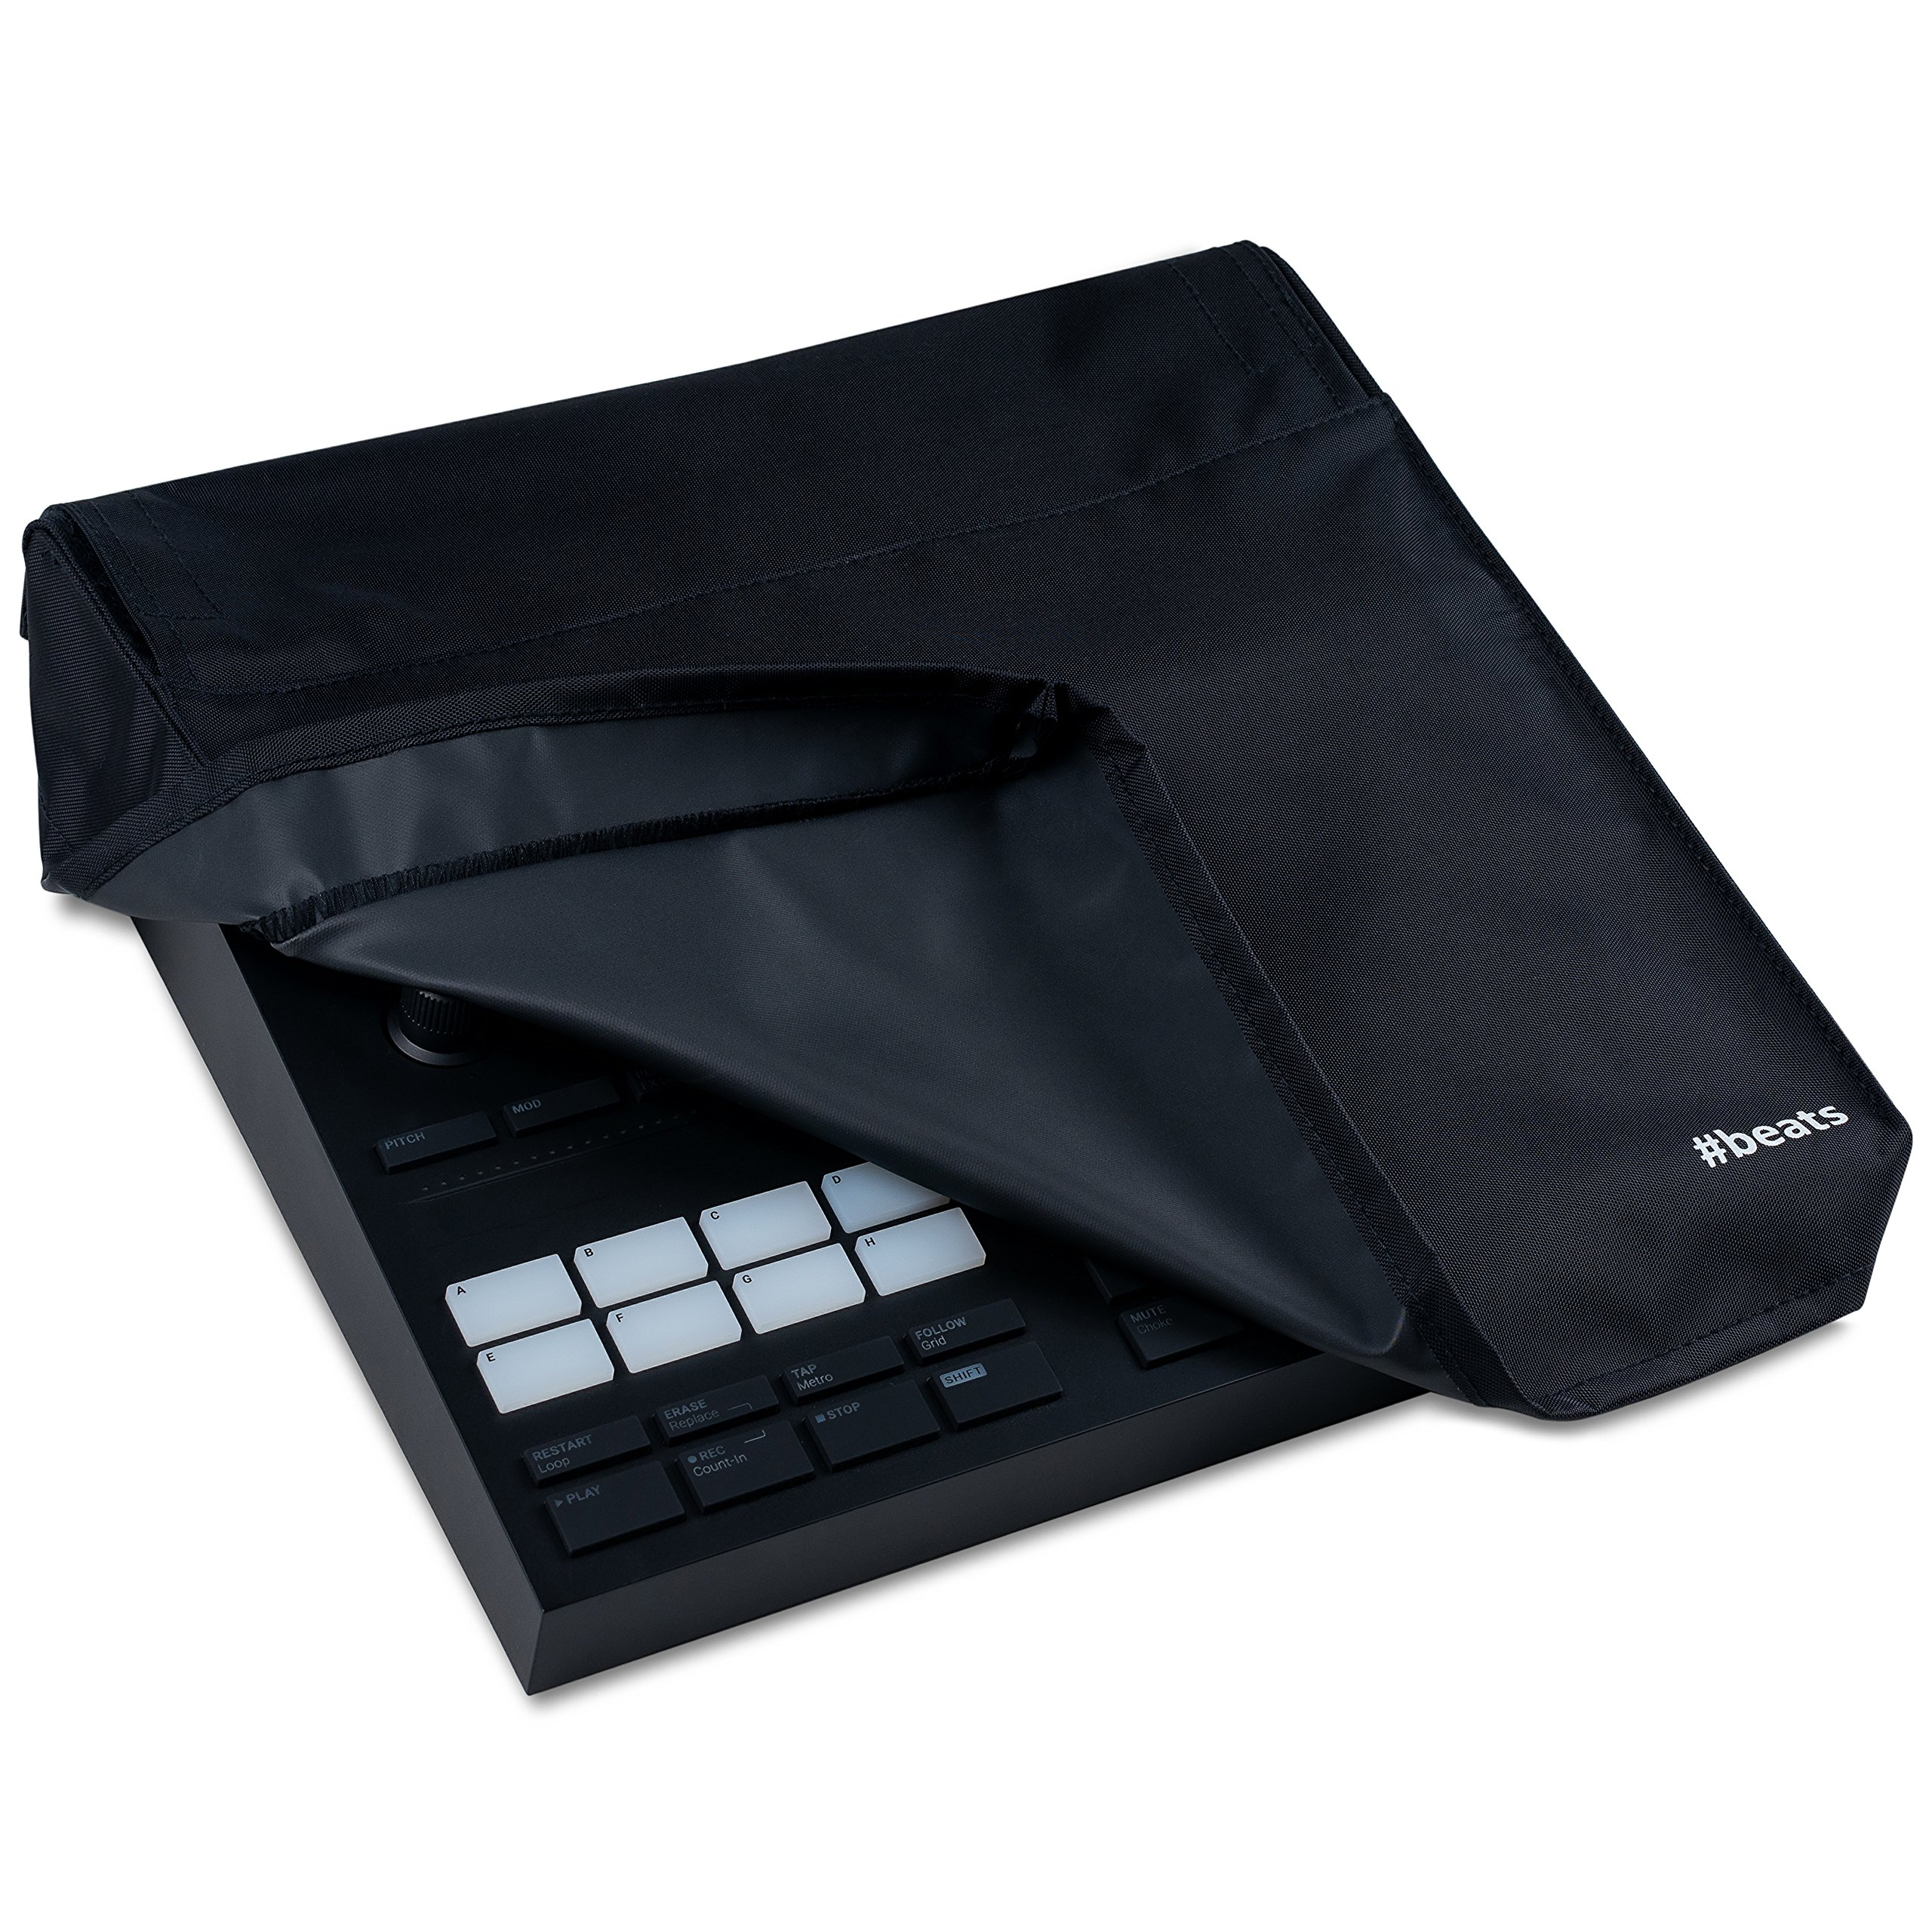 Sound Addicted - Dust Cover for Native Instruments Maschine MK3, Protect Your Maschine Against Dust, Liquids Spills or Scratches (WaterProof, Anti Static, Premium Nylon)